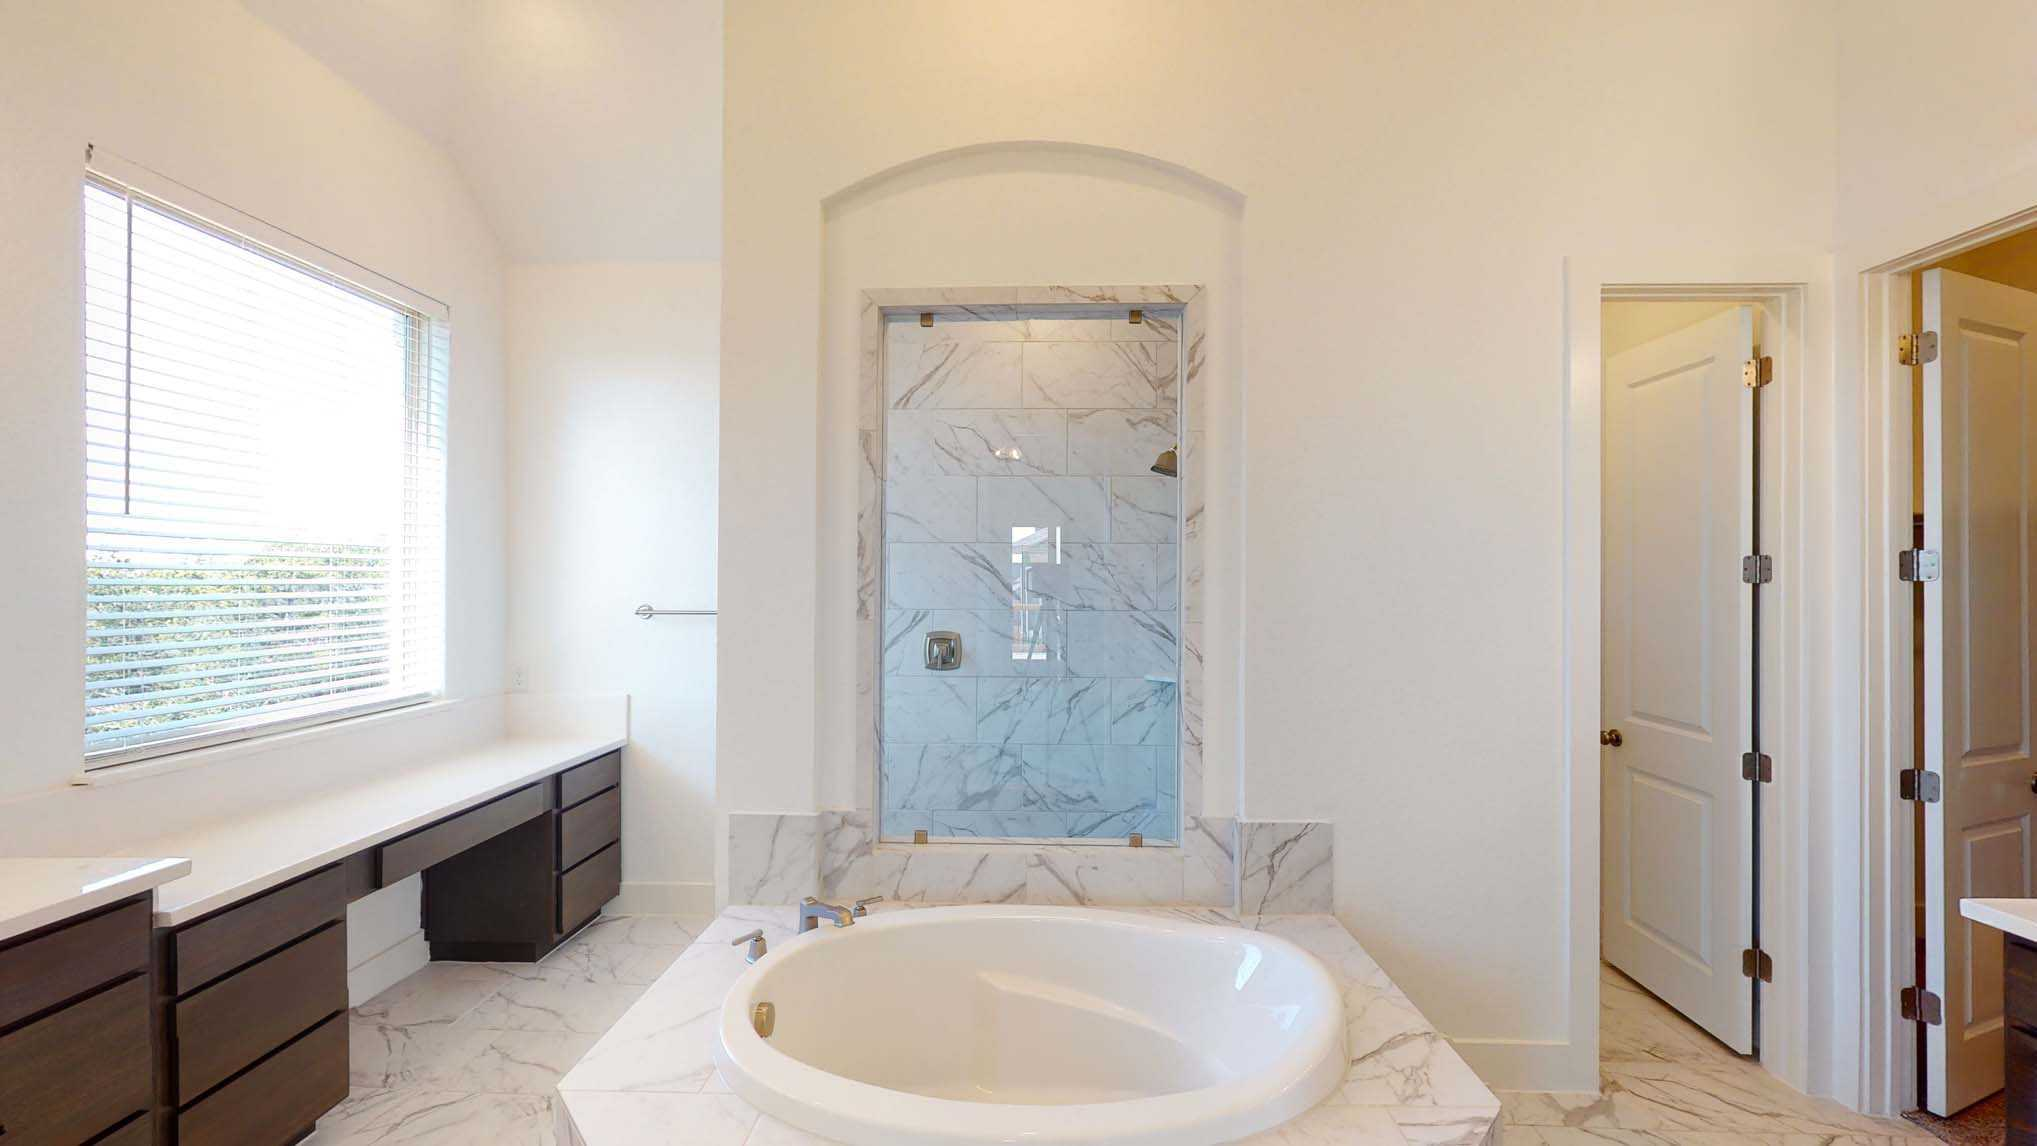 Bathroom featured in the Plan 215 By Highland Homes in San Antonio, TX